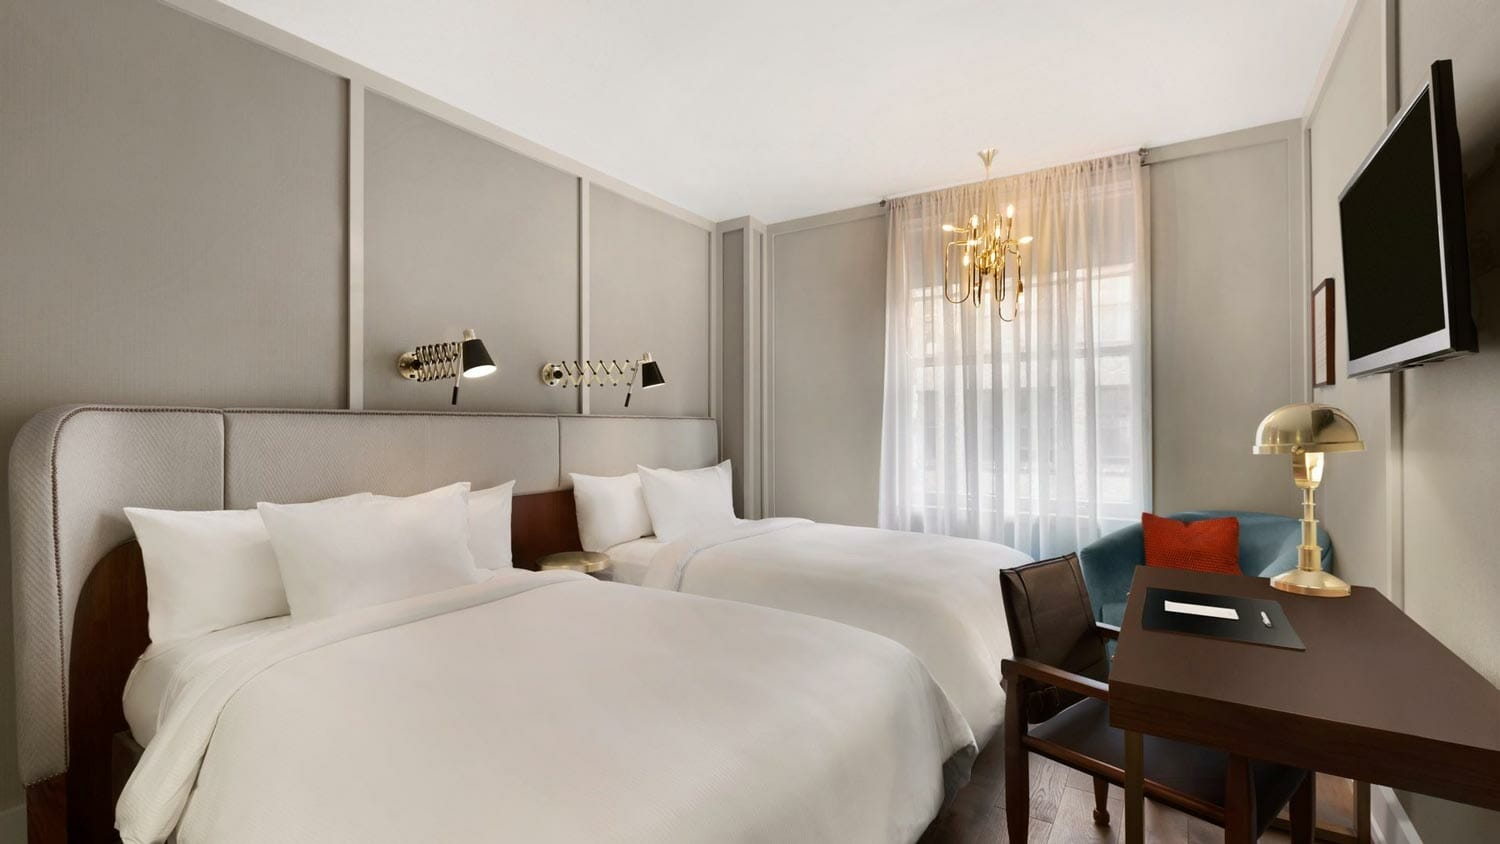 Donde-dormir-en-Nueva-York-hotel-the-Evelyn-Manhattan